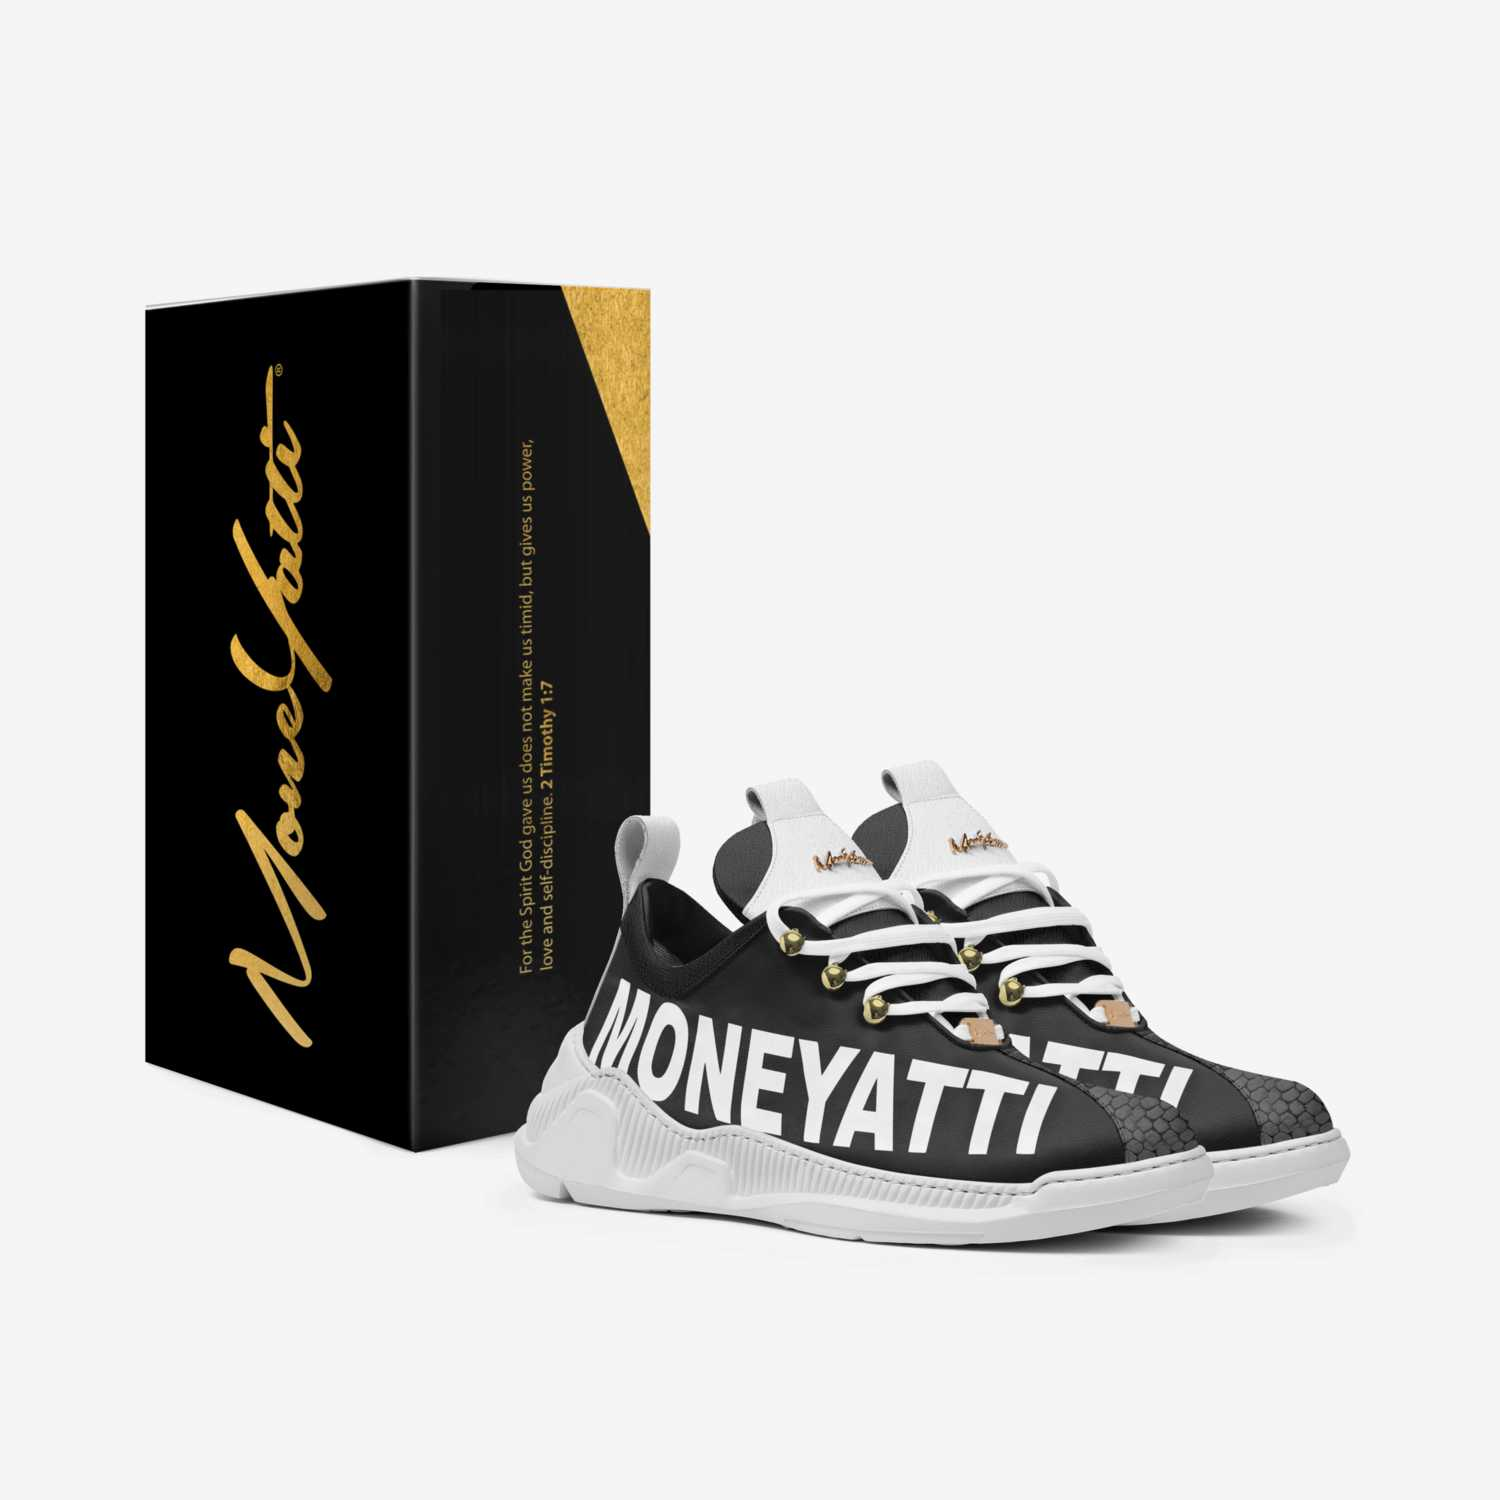 Sig03 custom made in Italy shoes by Moneyatti Brand | Box view